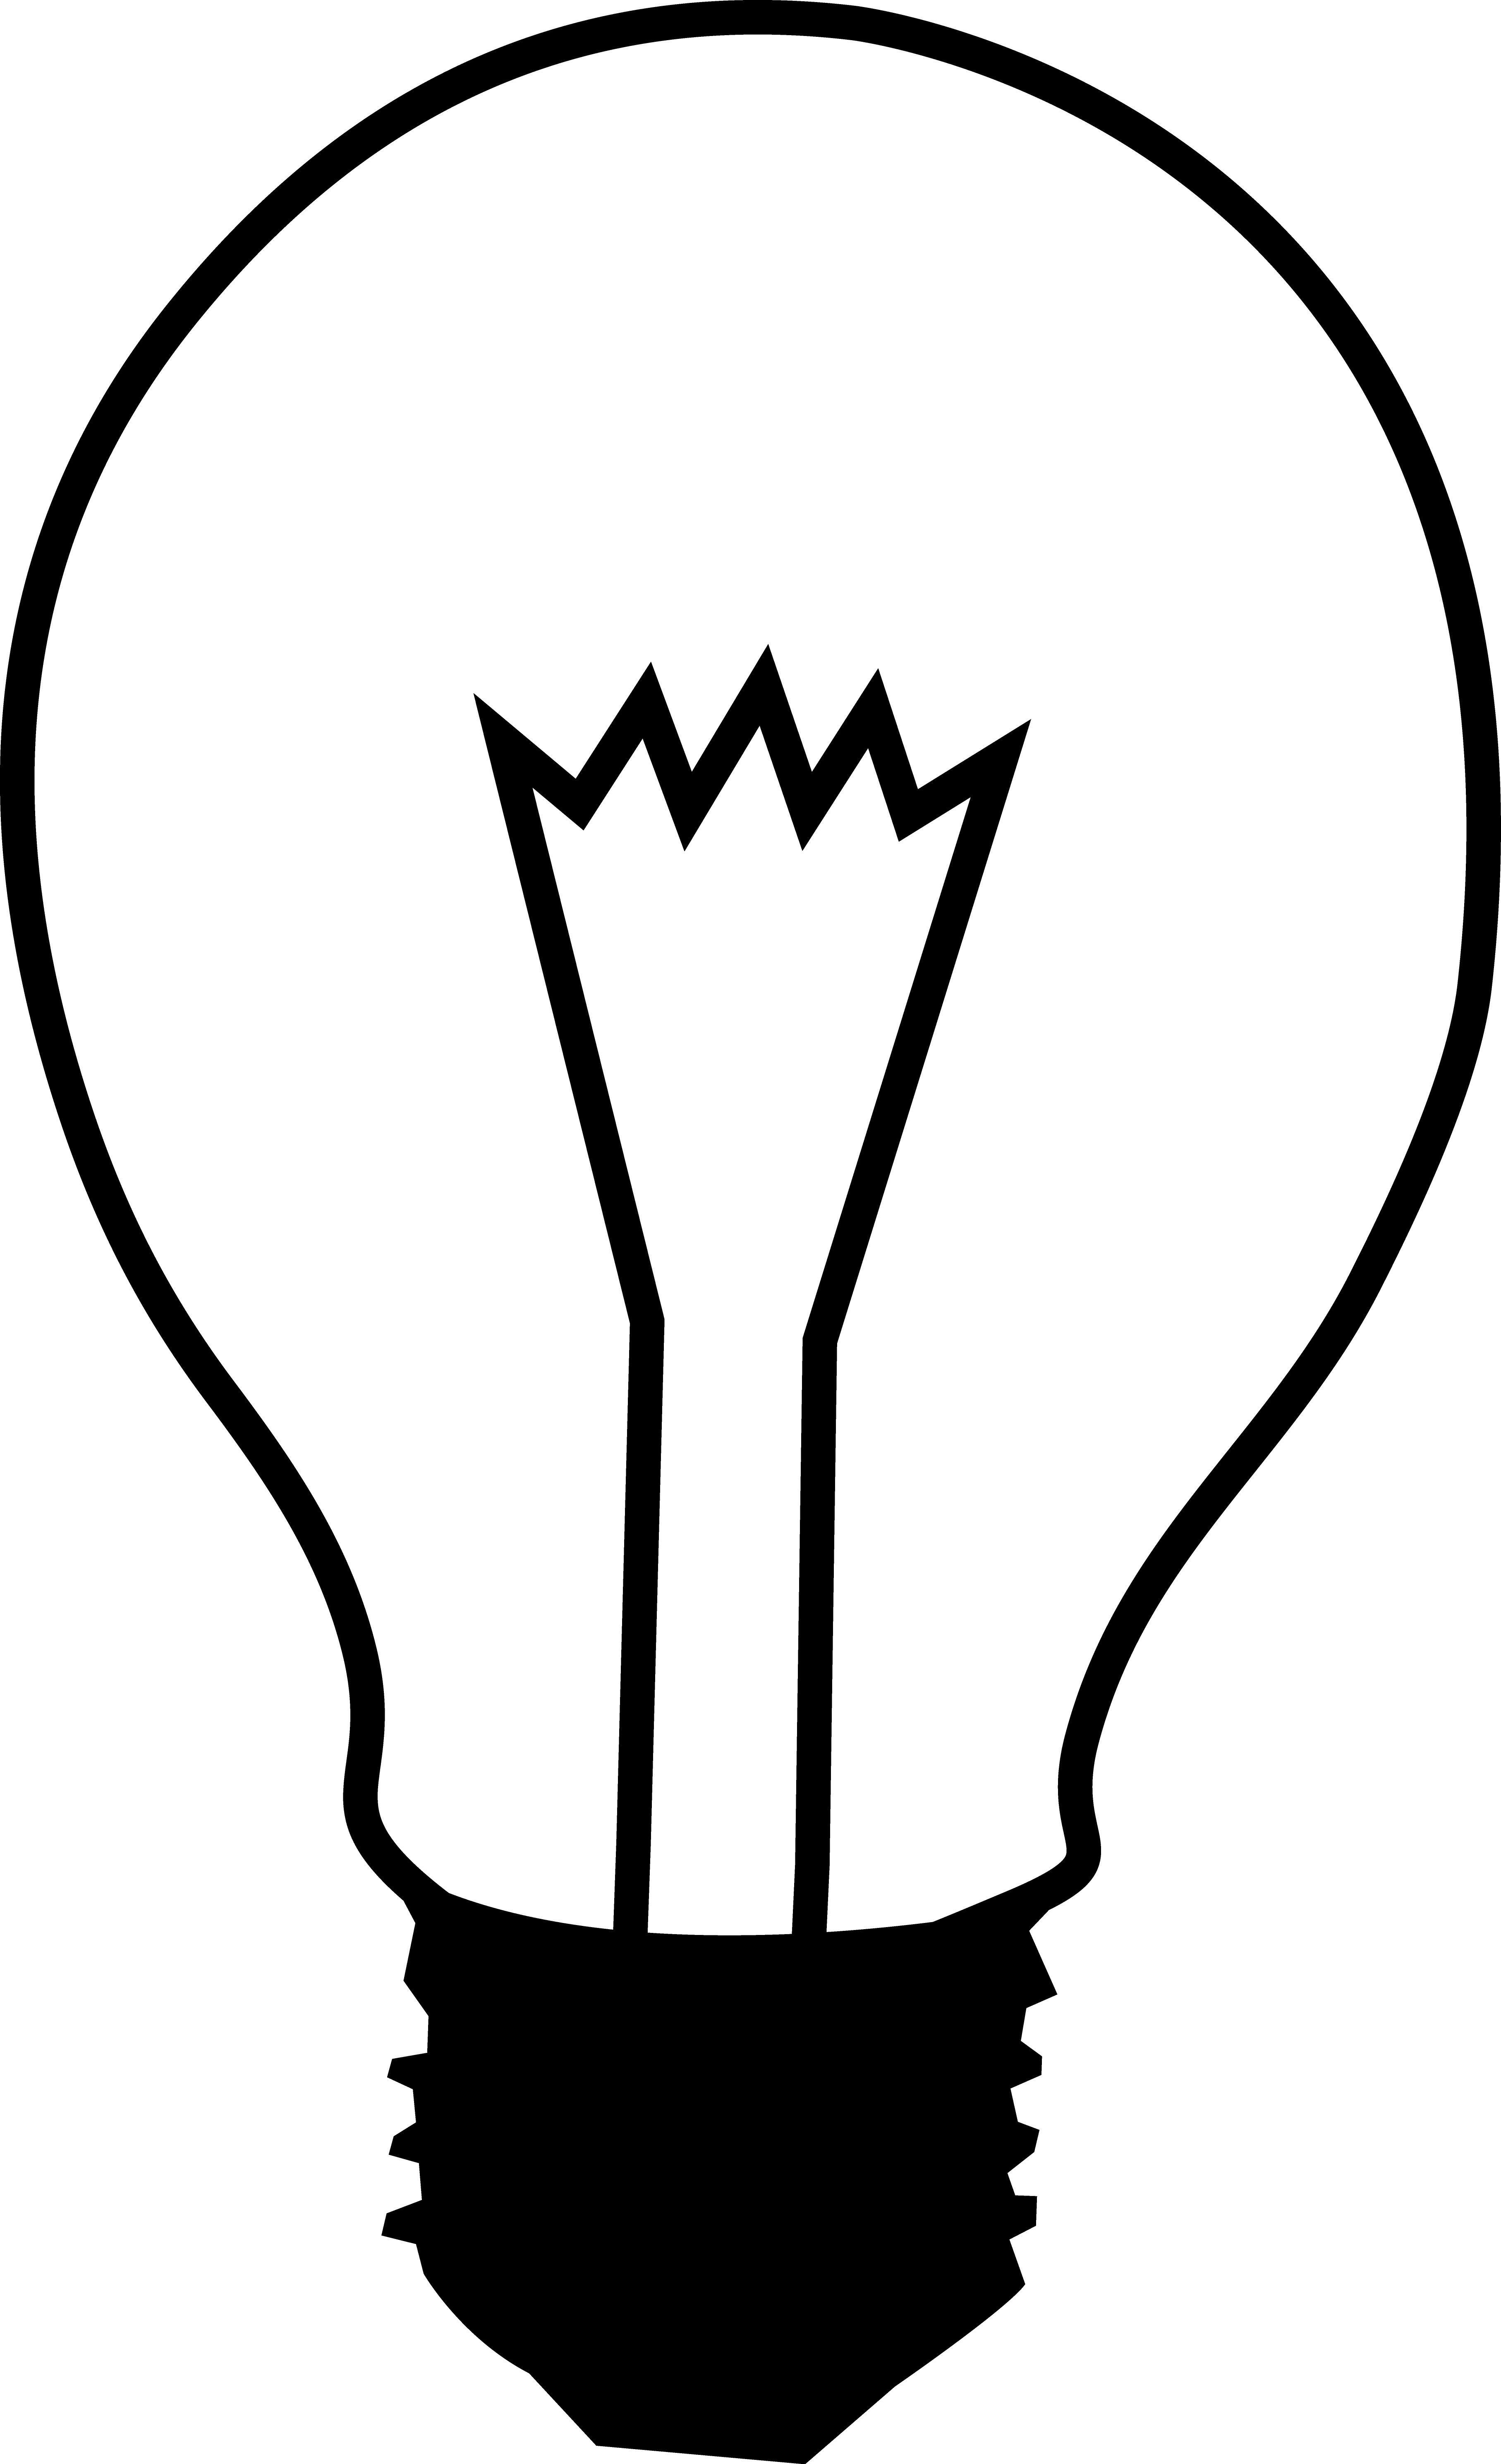 Free Light Bulb Image Download Free Clip Art Free Clip